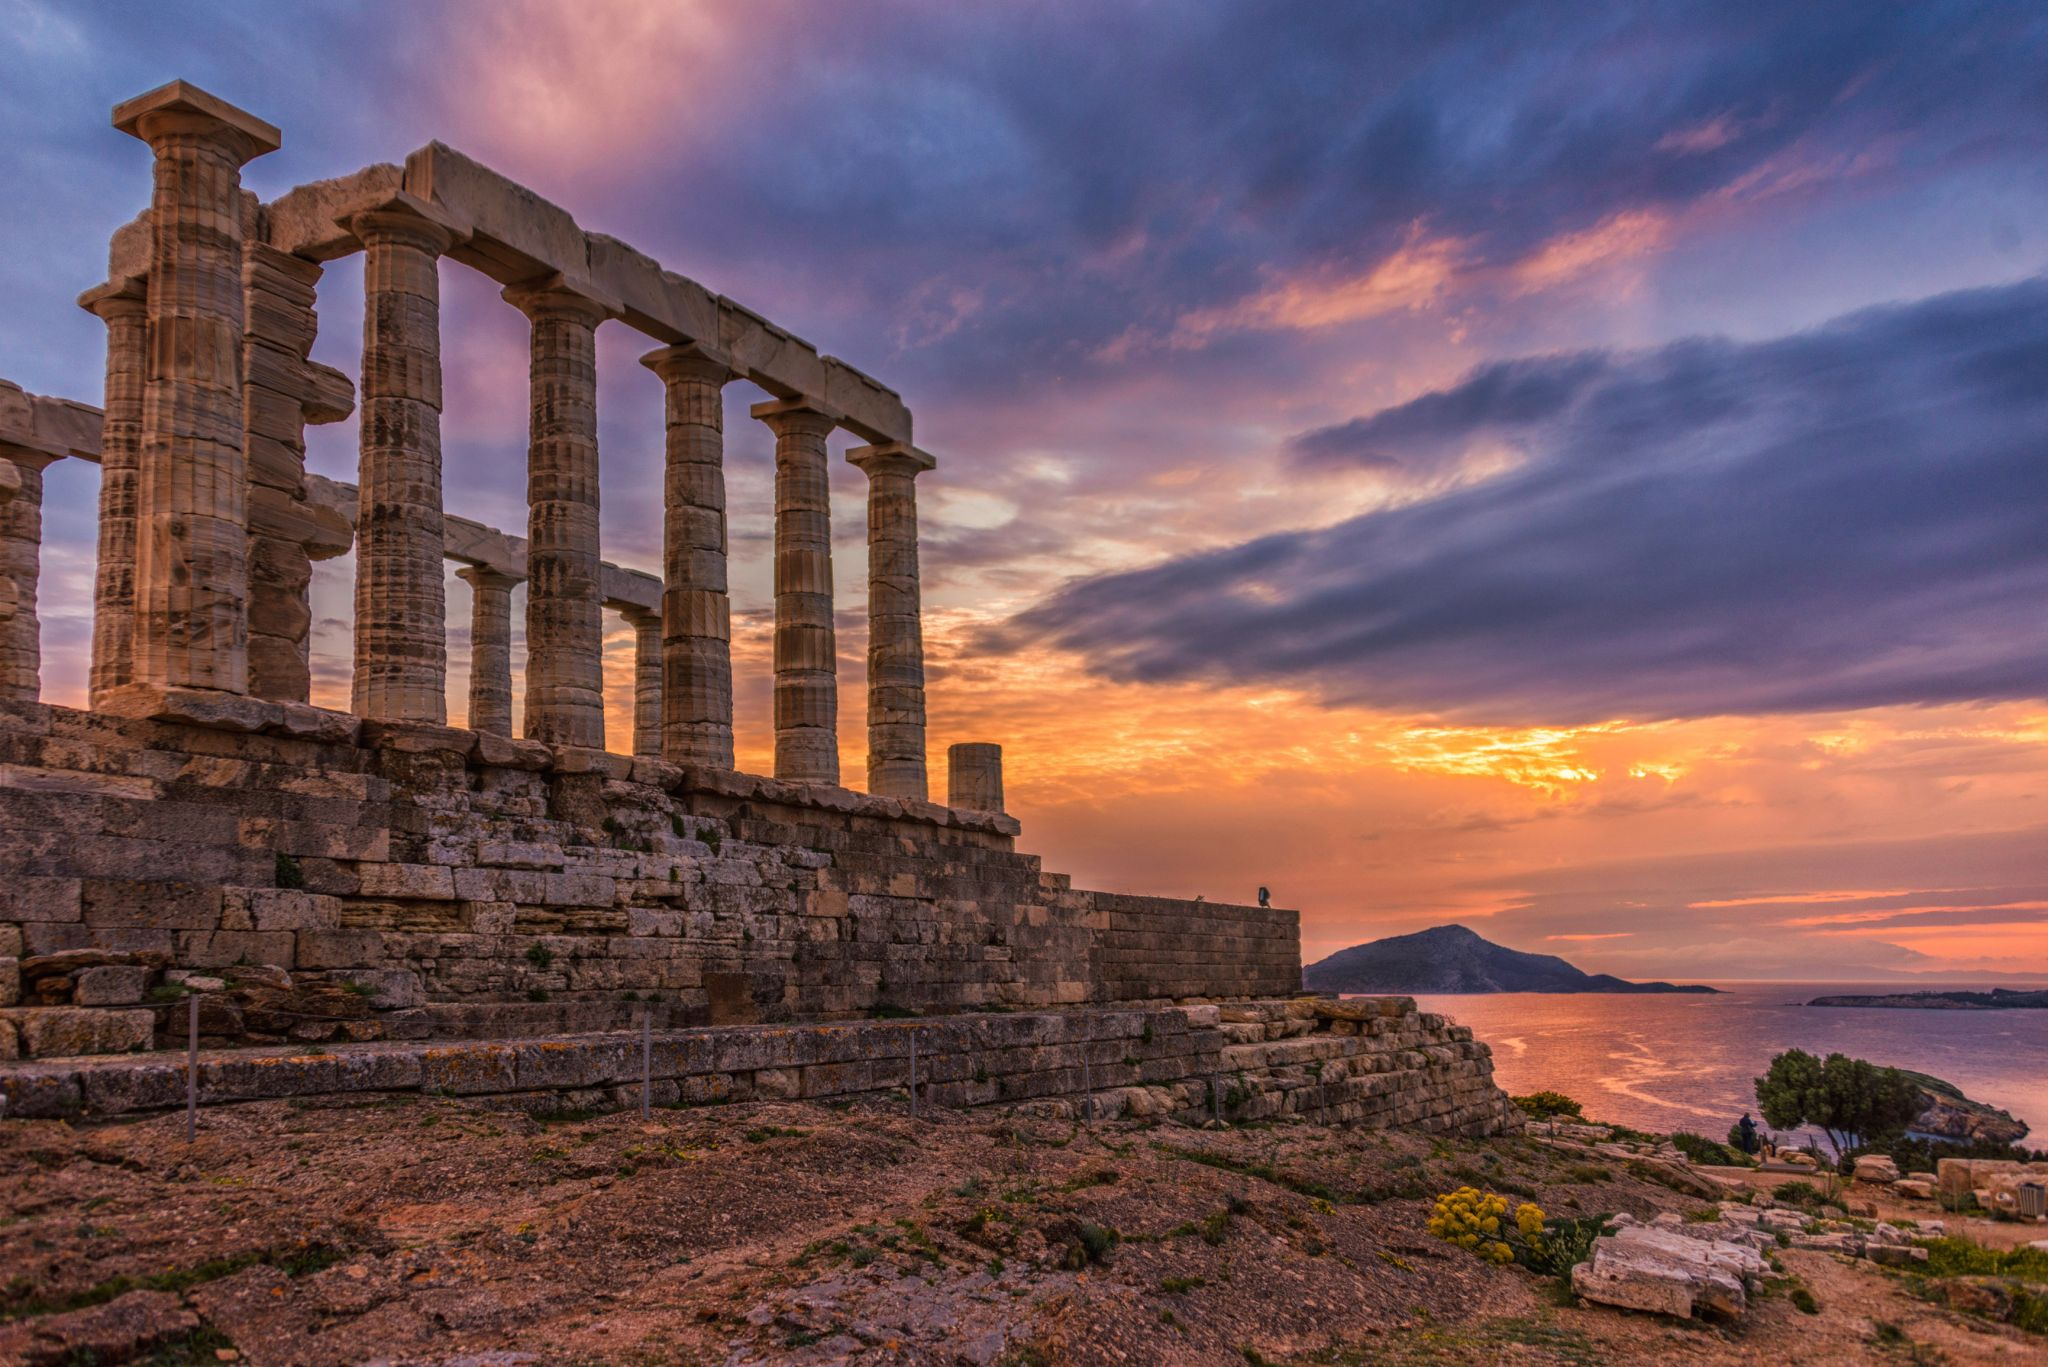 Temple of Poseidon, Cape Sounio, Greece